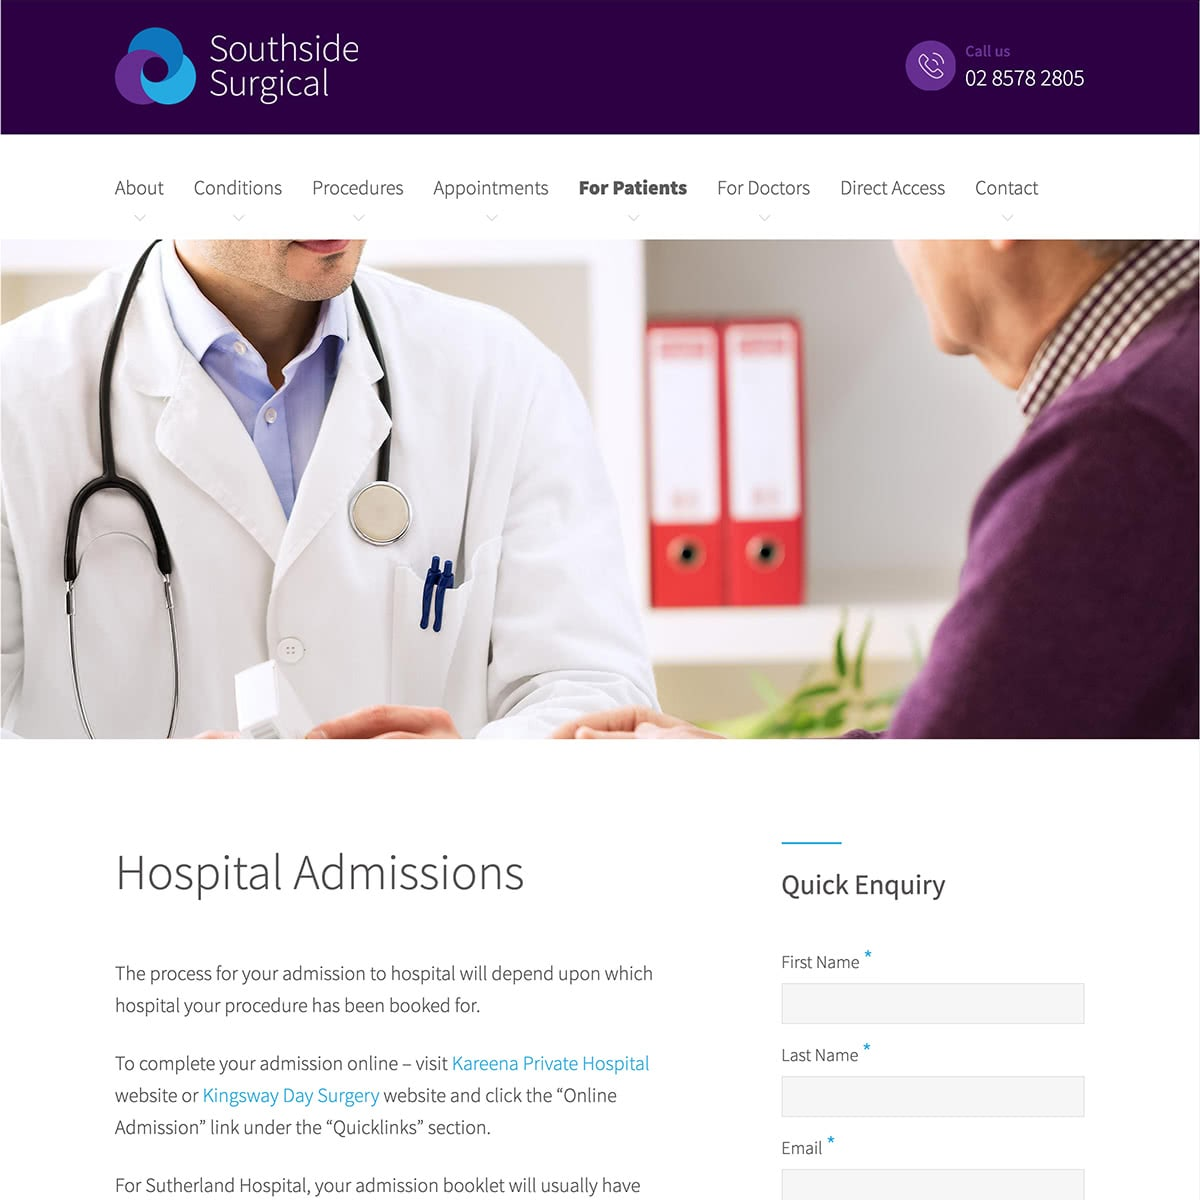 Southside Surgical - For Patients